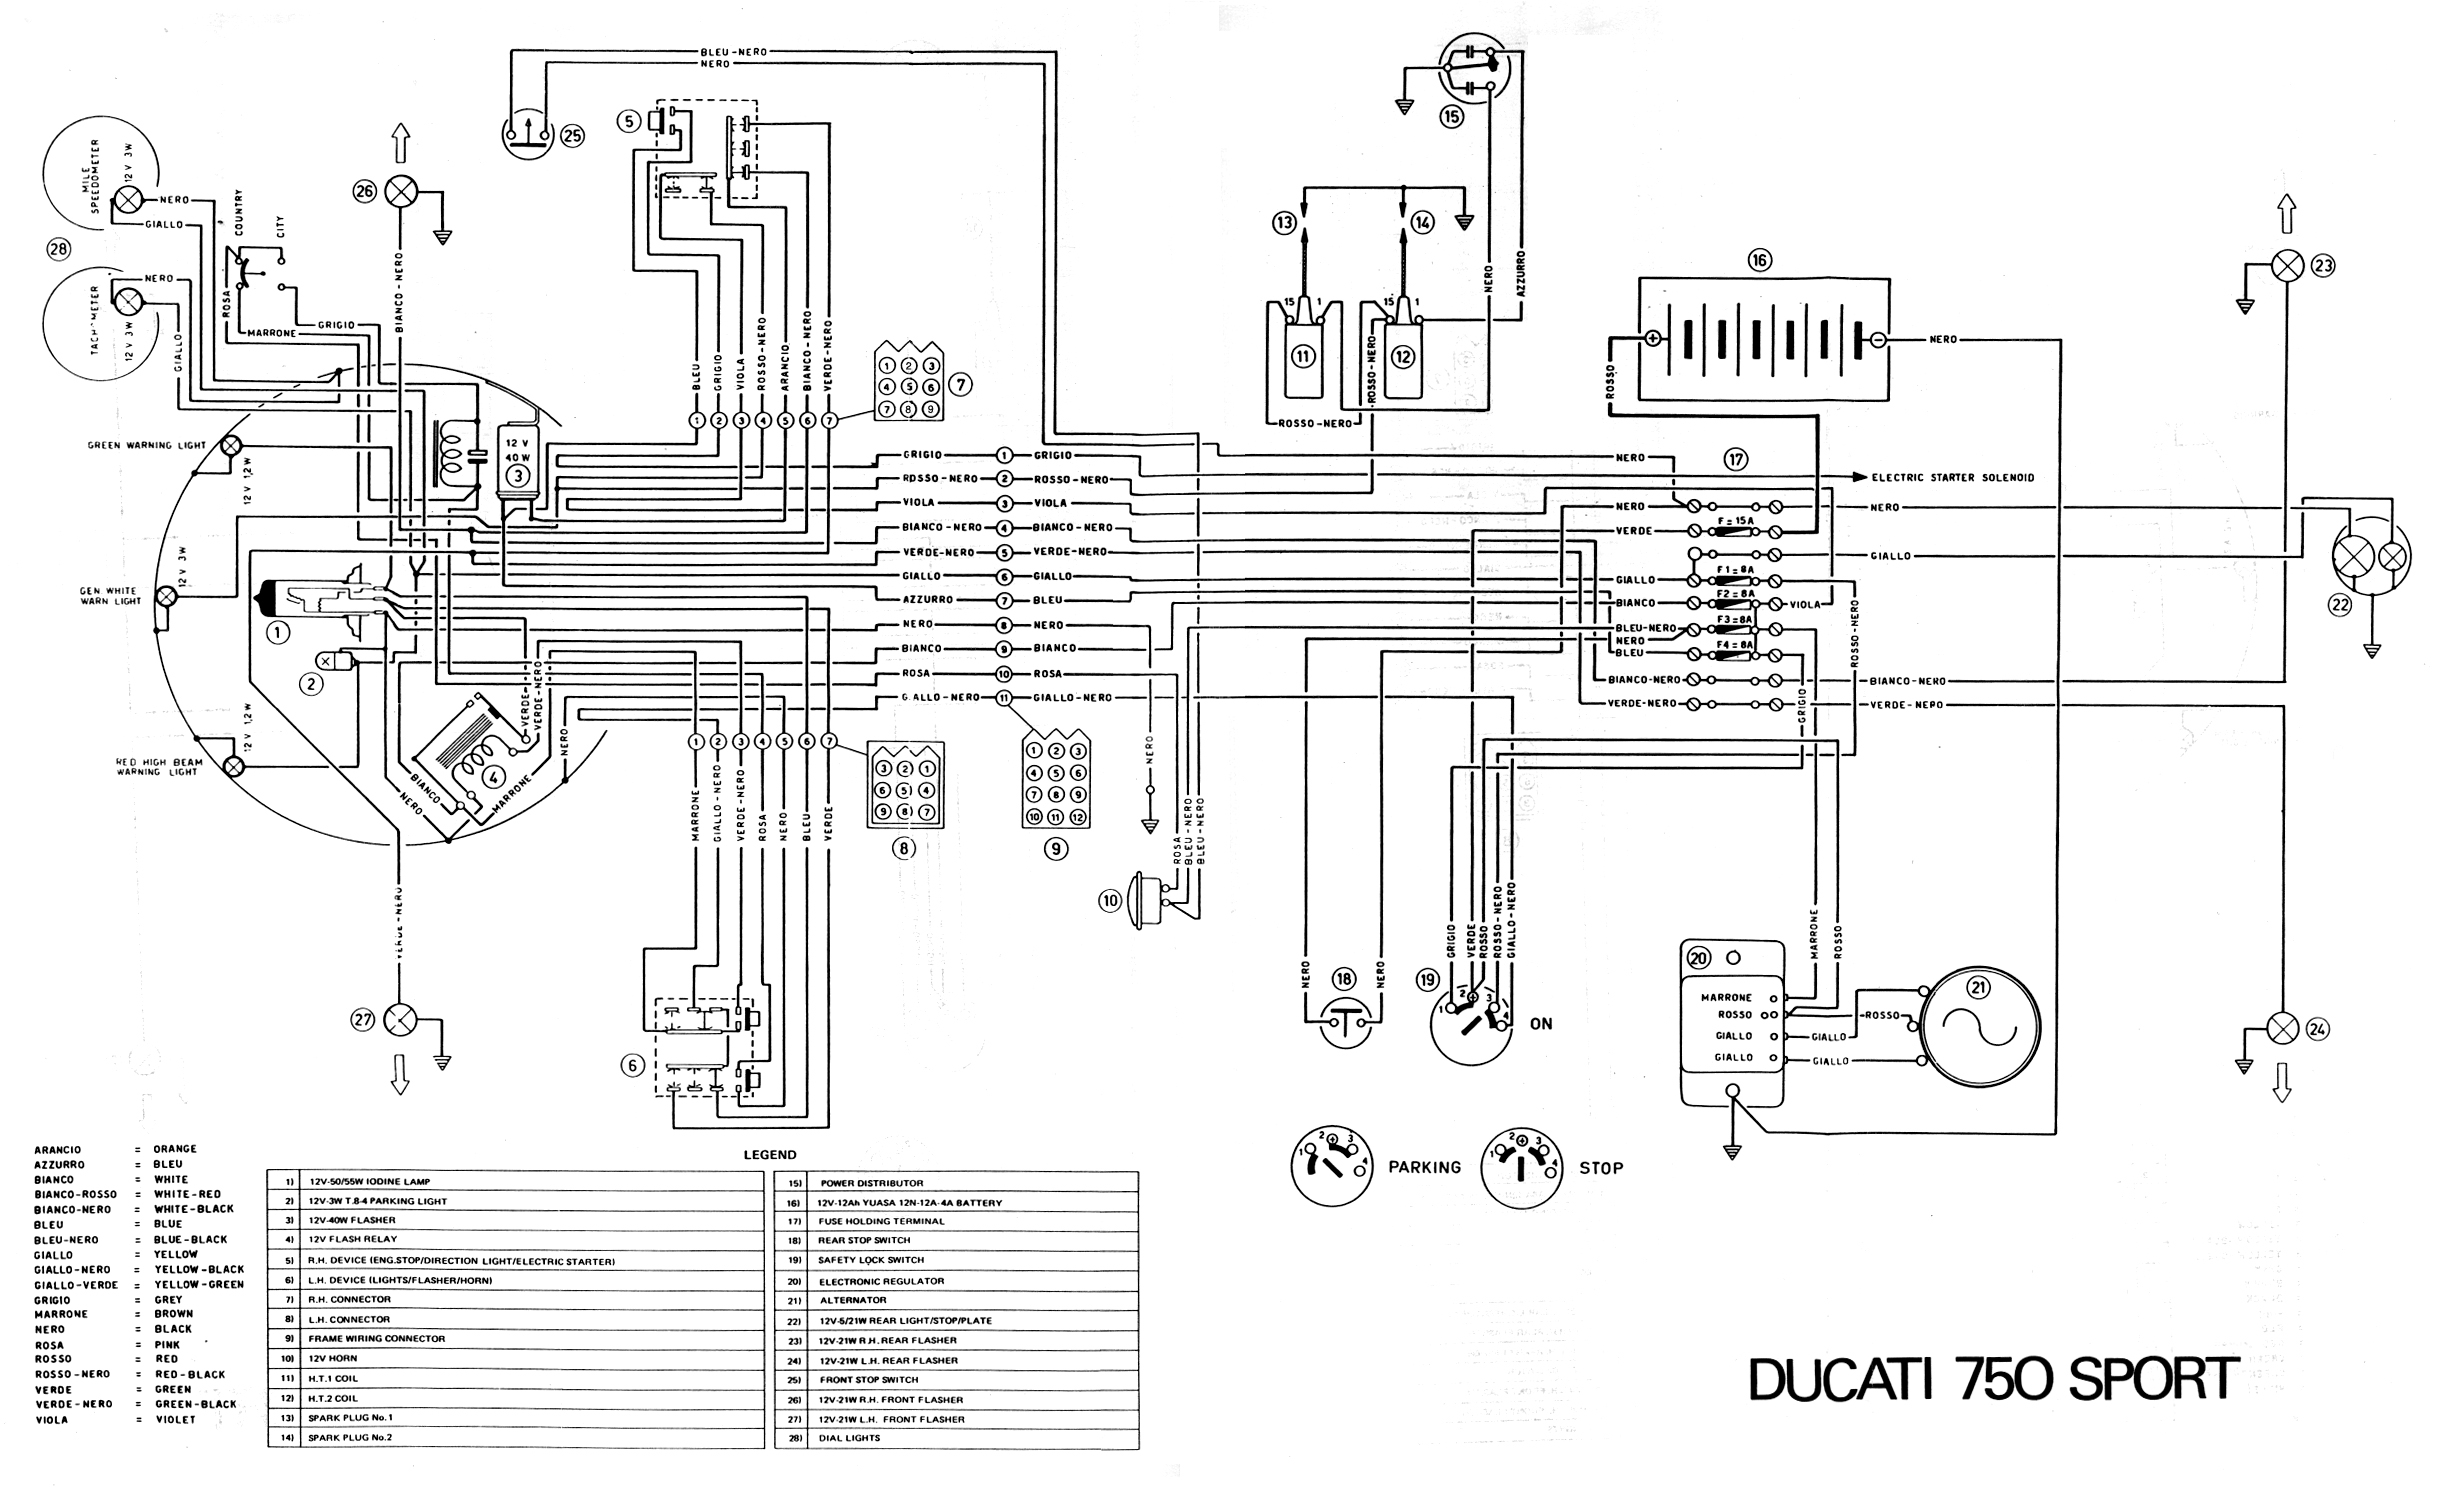 kubota wiring diagram acura integra radio m6800 within and